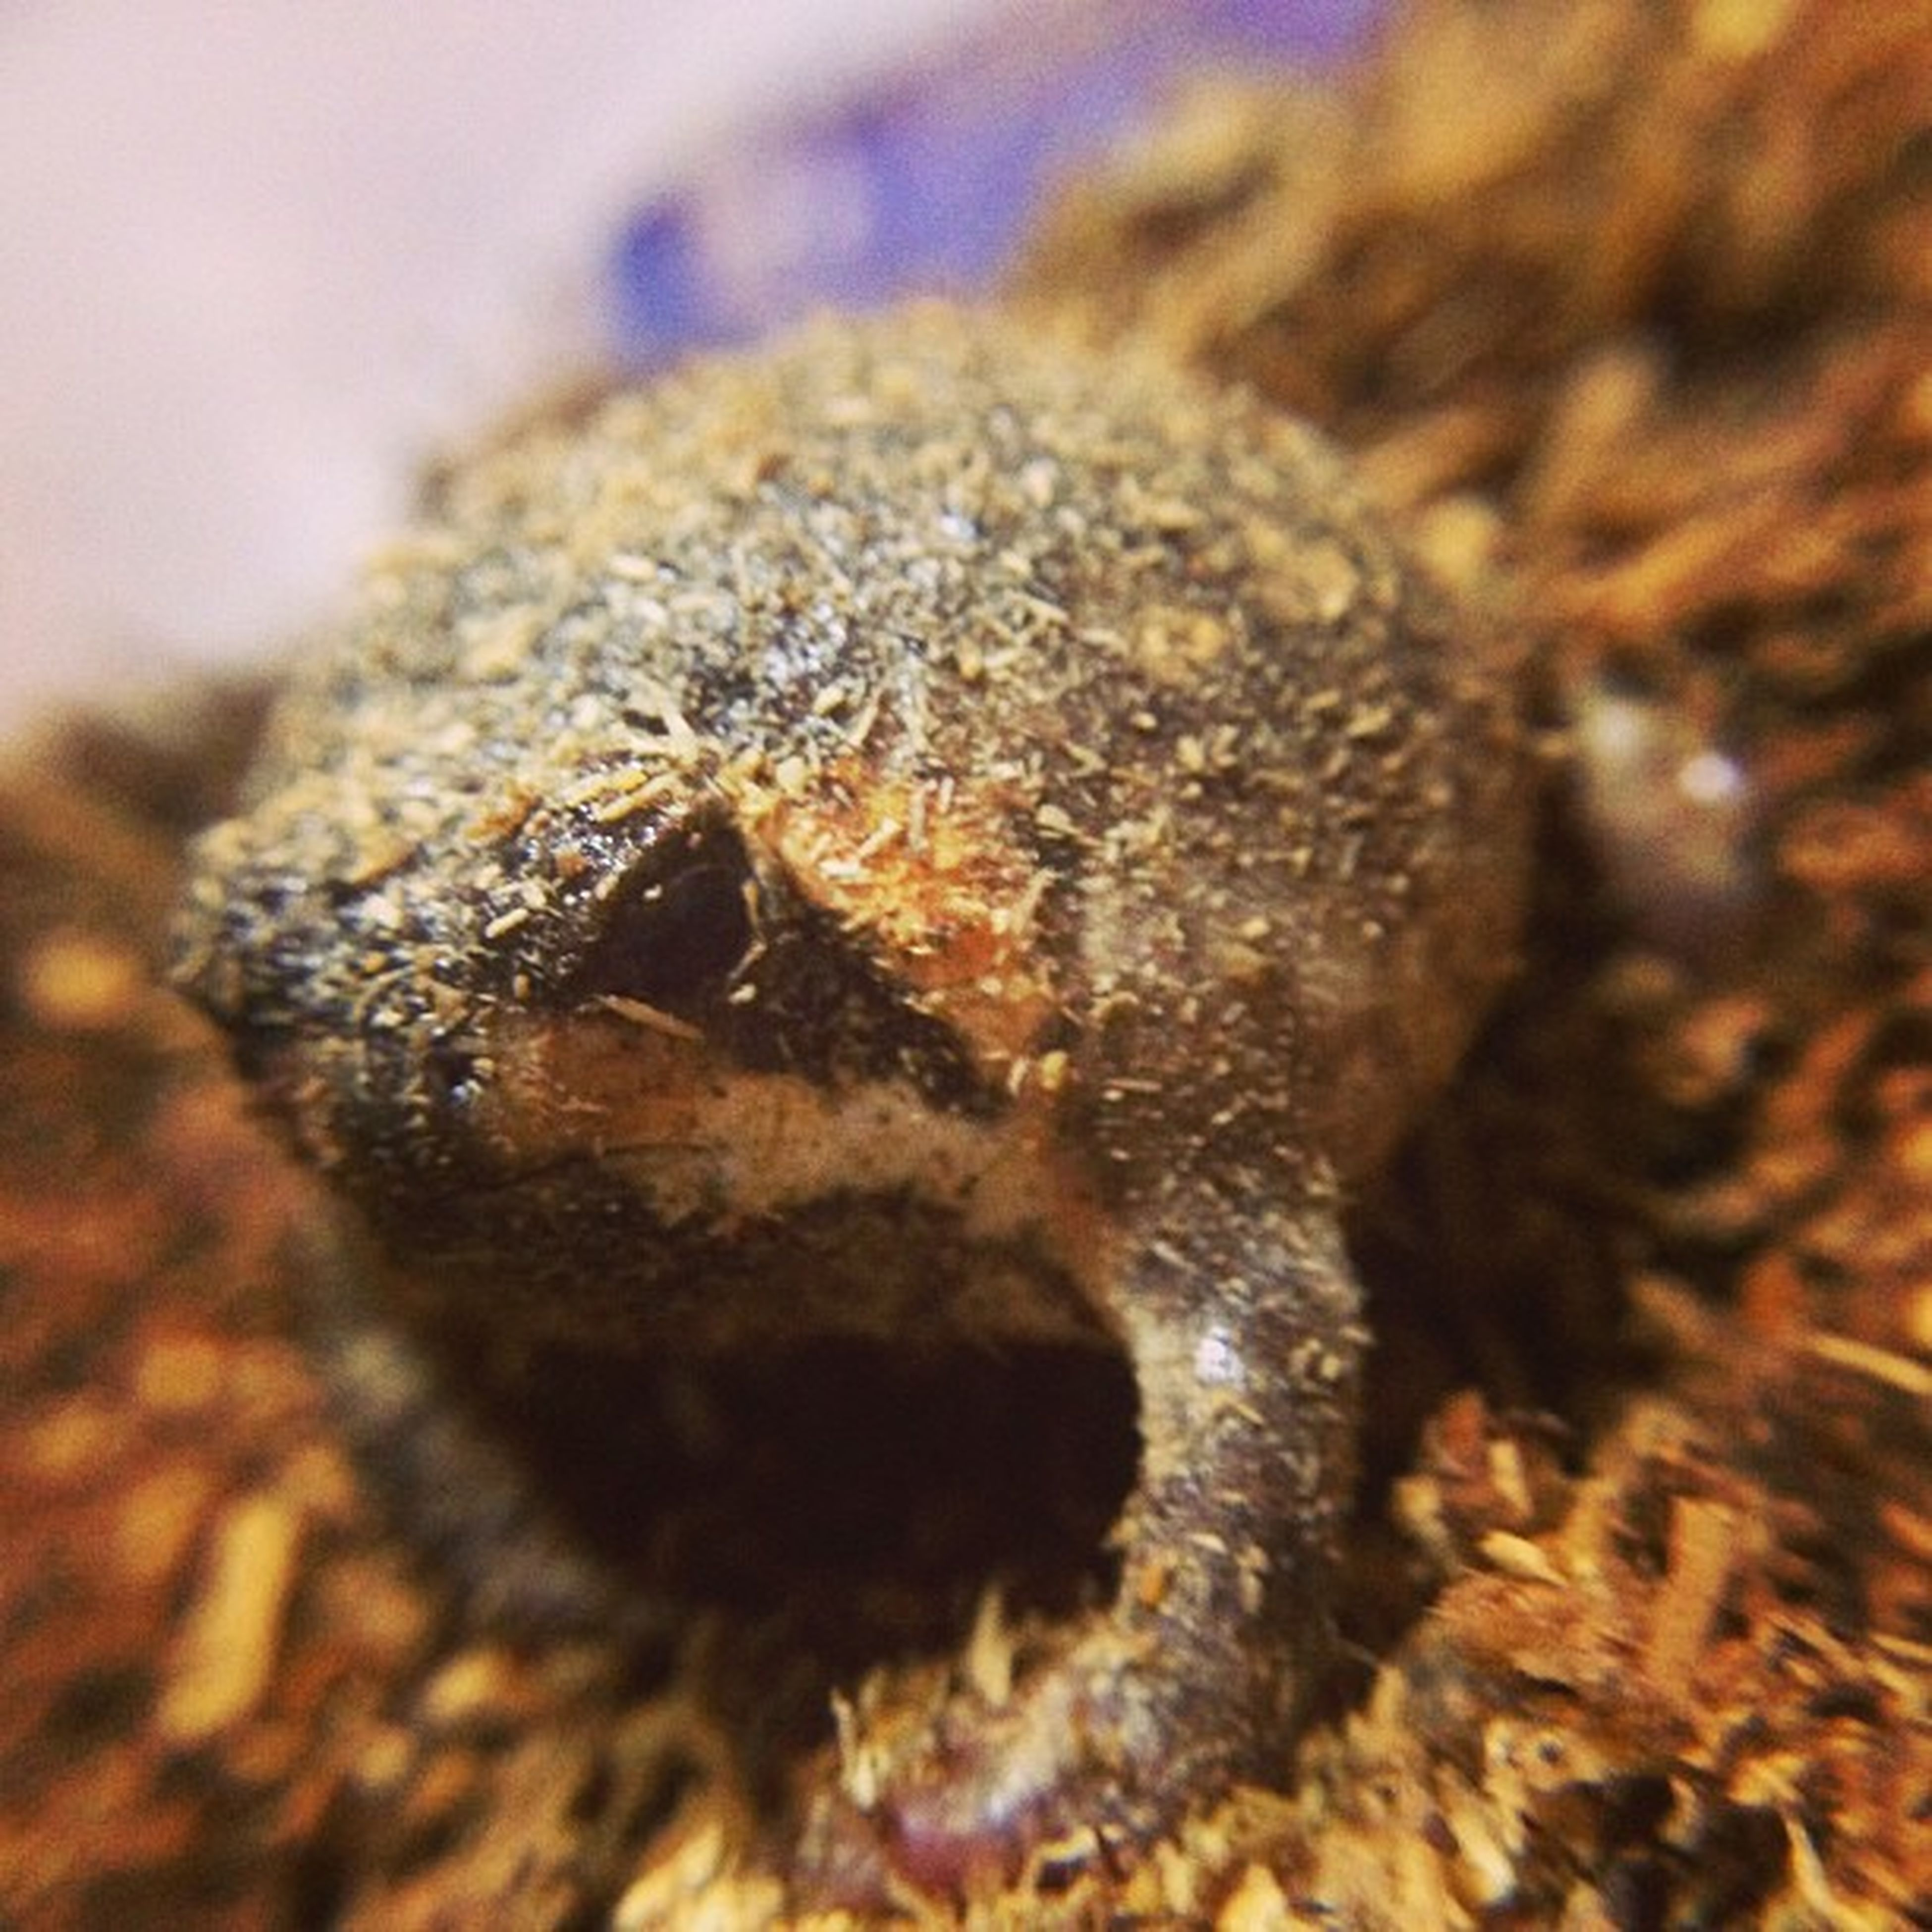 animal themes, one animal, animals in the wild, wildlife, insect, close-up, selective focus, focus on foreground, animal body part, nature, zoology, extreme close-up, brown, outdoors, no people, textured, day, macro, detail, animal eye